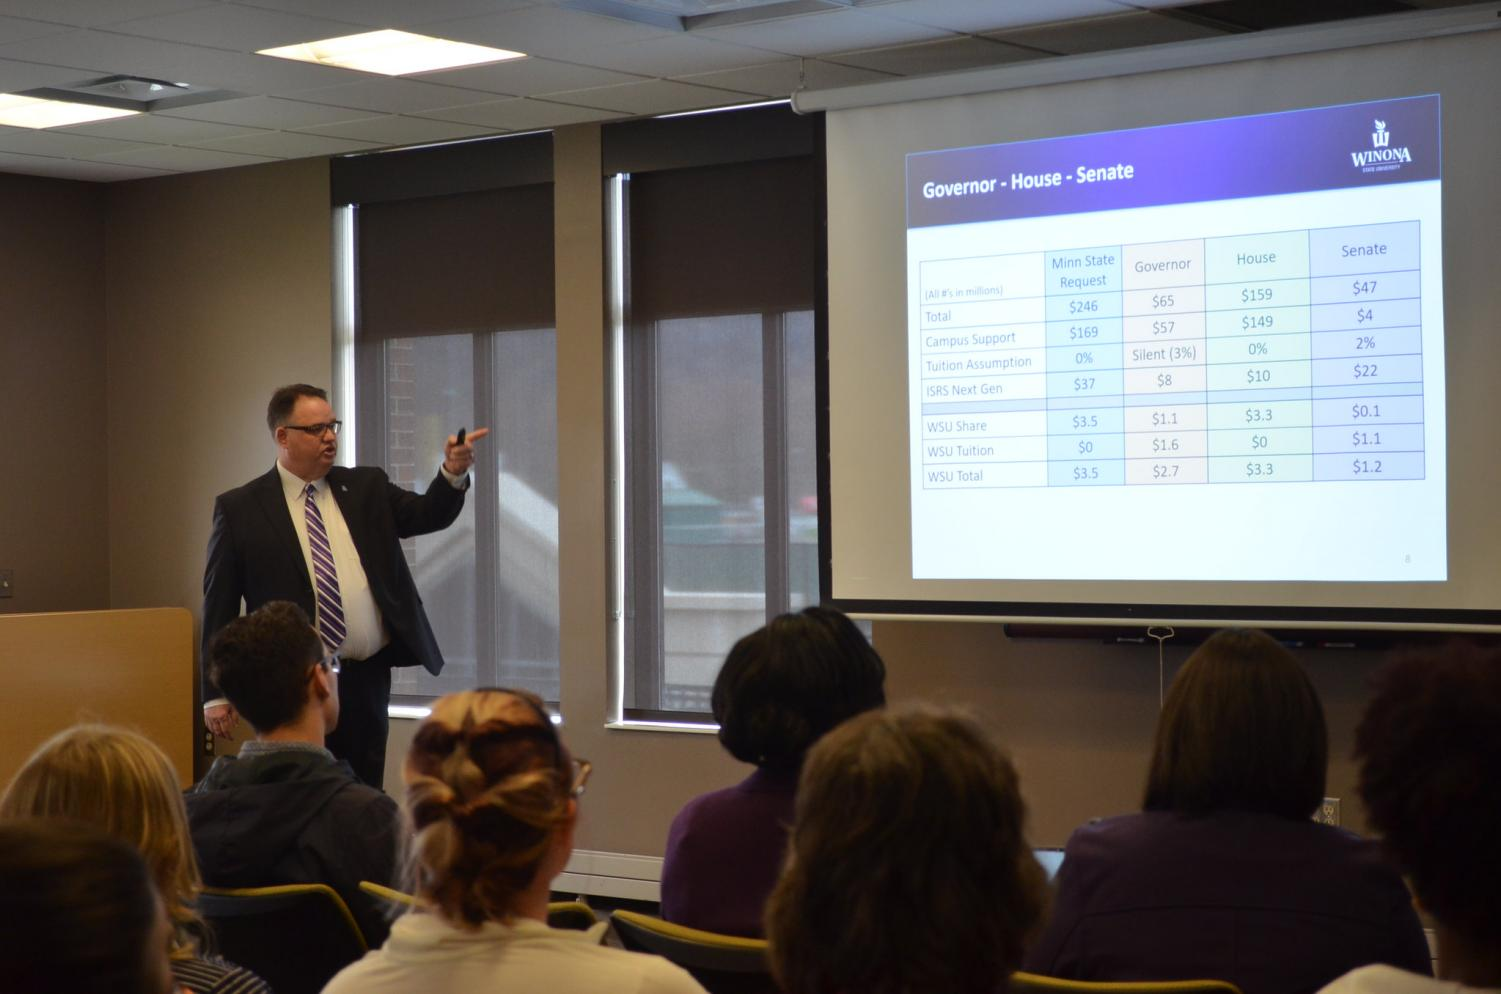 Scott Ellinghuysen, the vice president for finance and administration services and chief financial officer, explains the projections for the 2020 fiscal year budget on Thursday, April 18 in the Haake Conference Room. The forum was open to students and faculty and presented a rough outline of the 2019-20 school year.